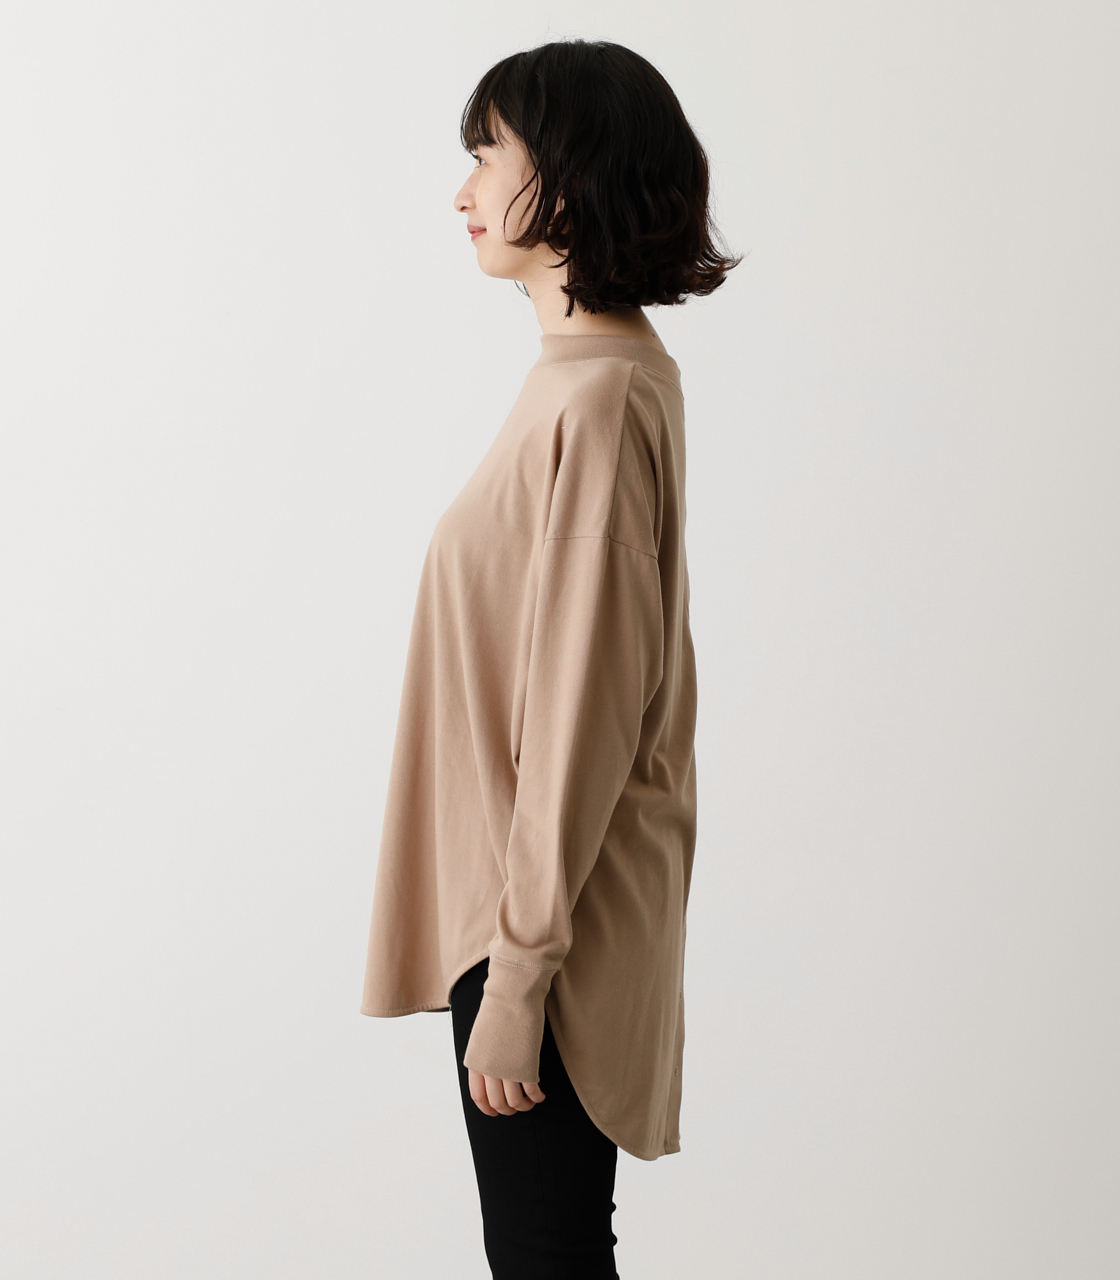 BACK BUTTON LONG T/バックボタンロングTシャツ 詳細画像 BEG 5